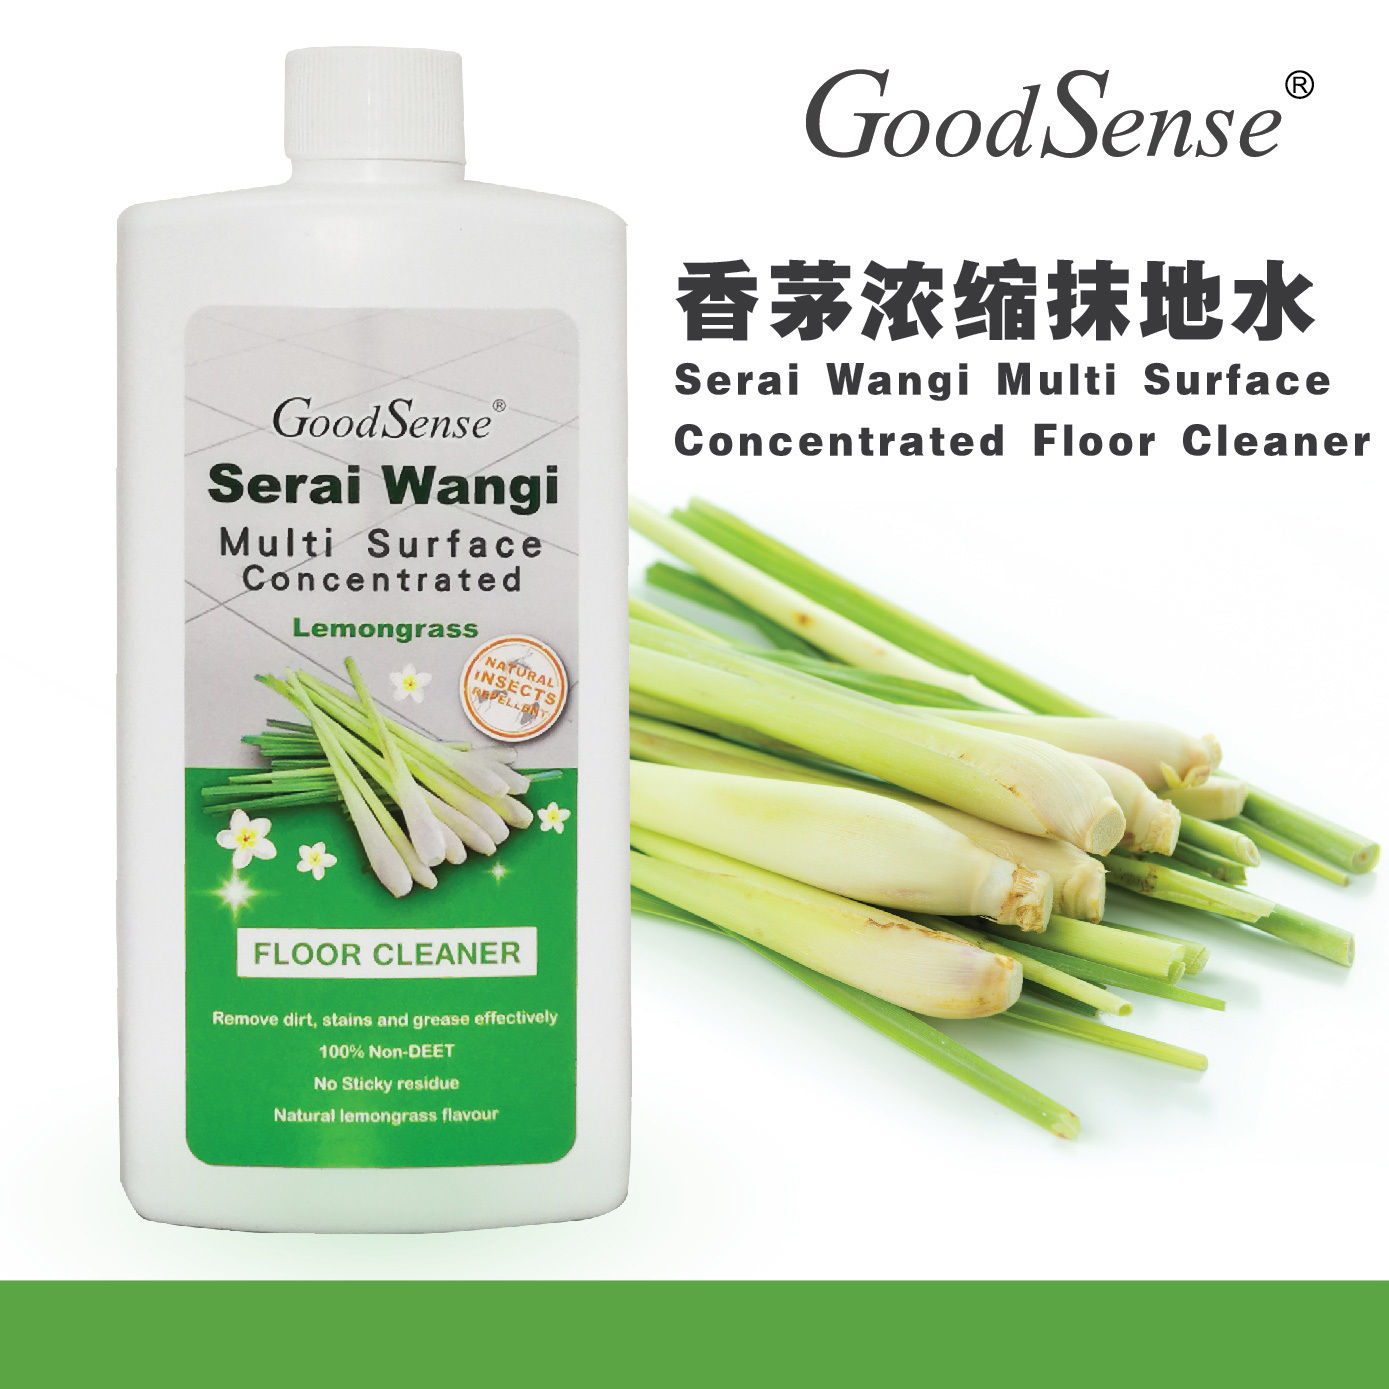 floor cleaner-01.jpg